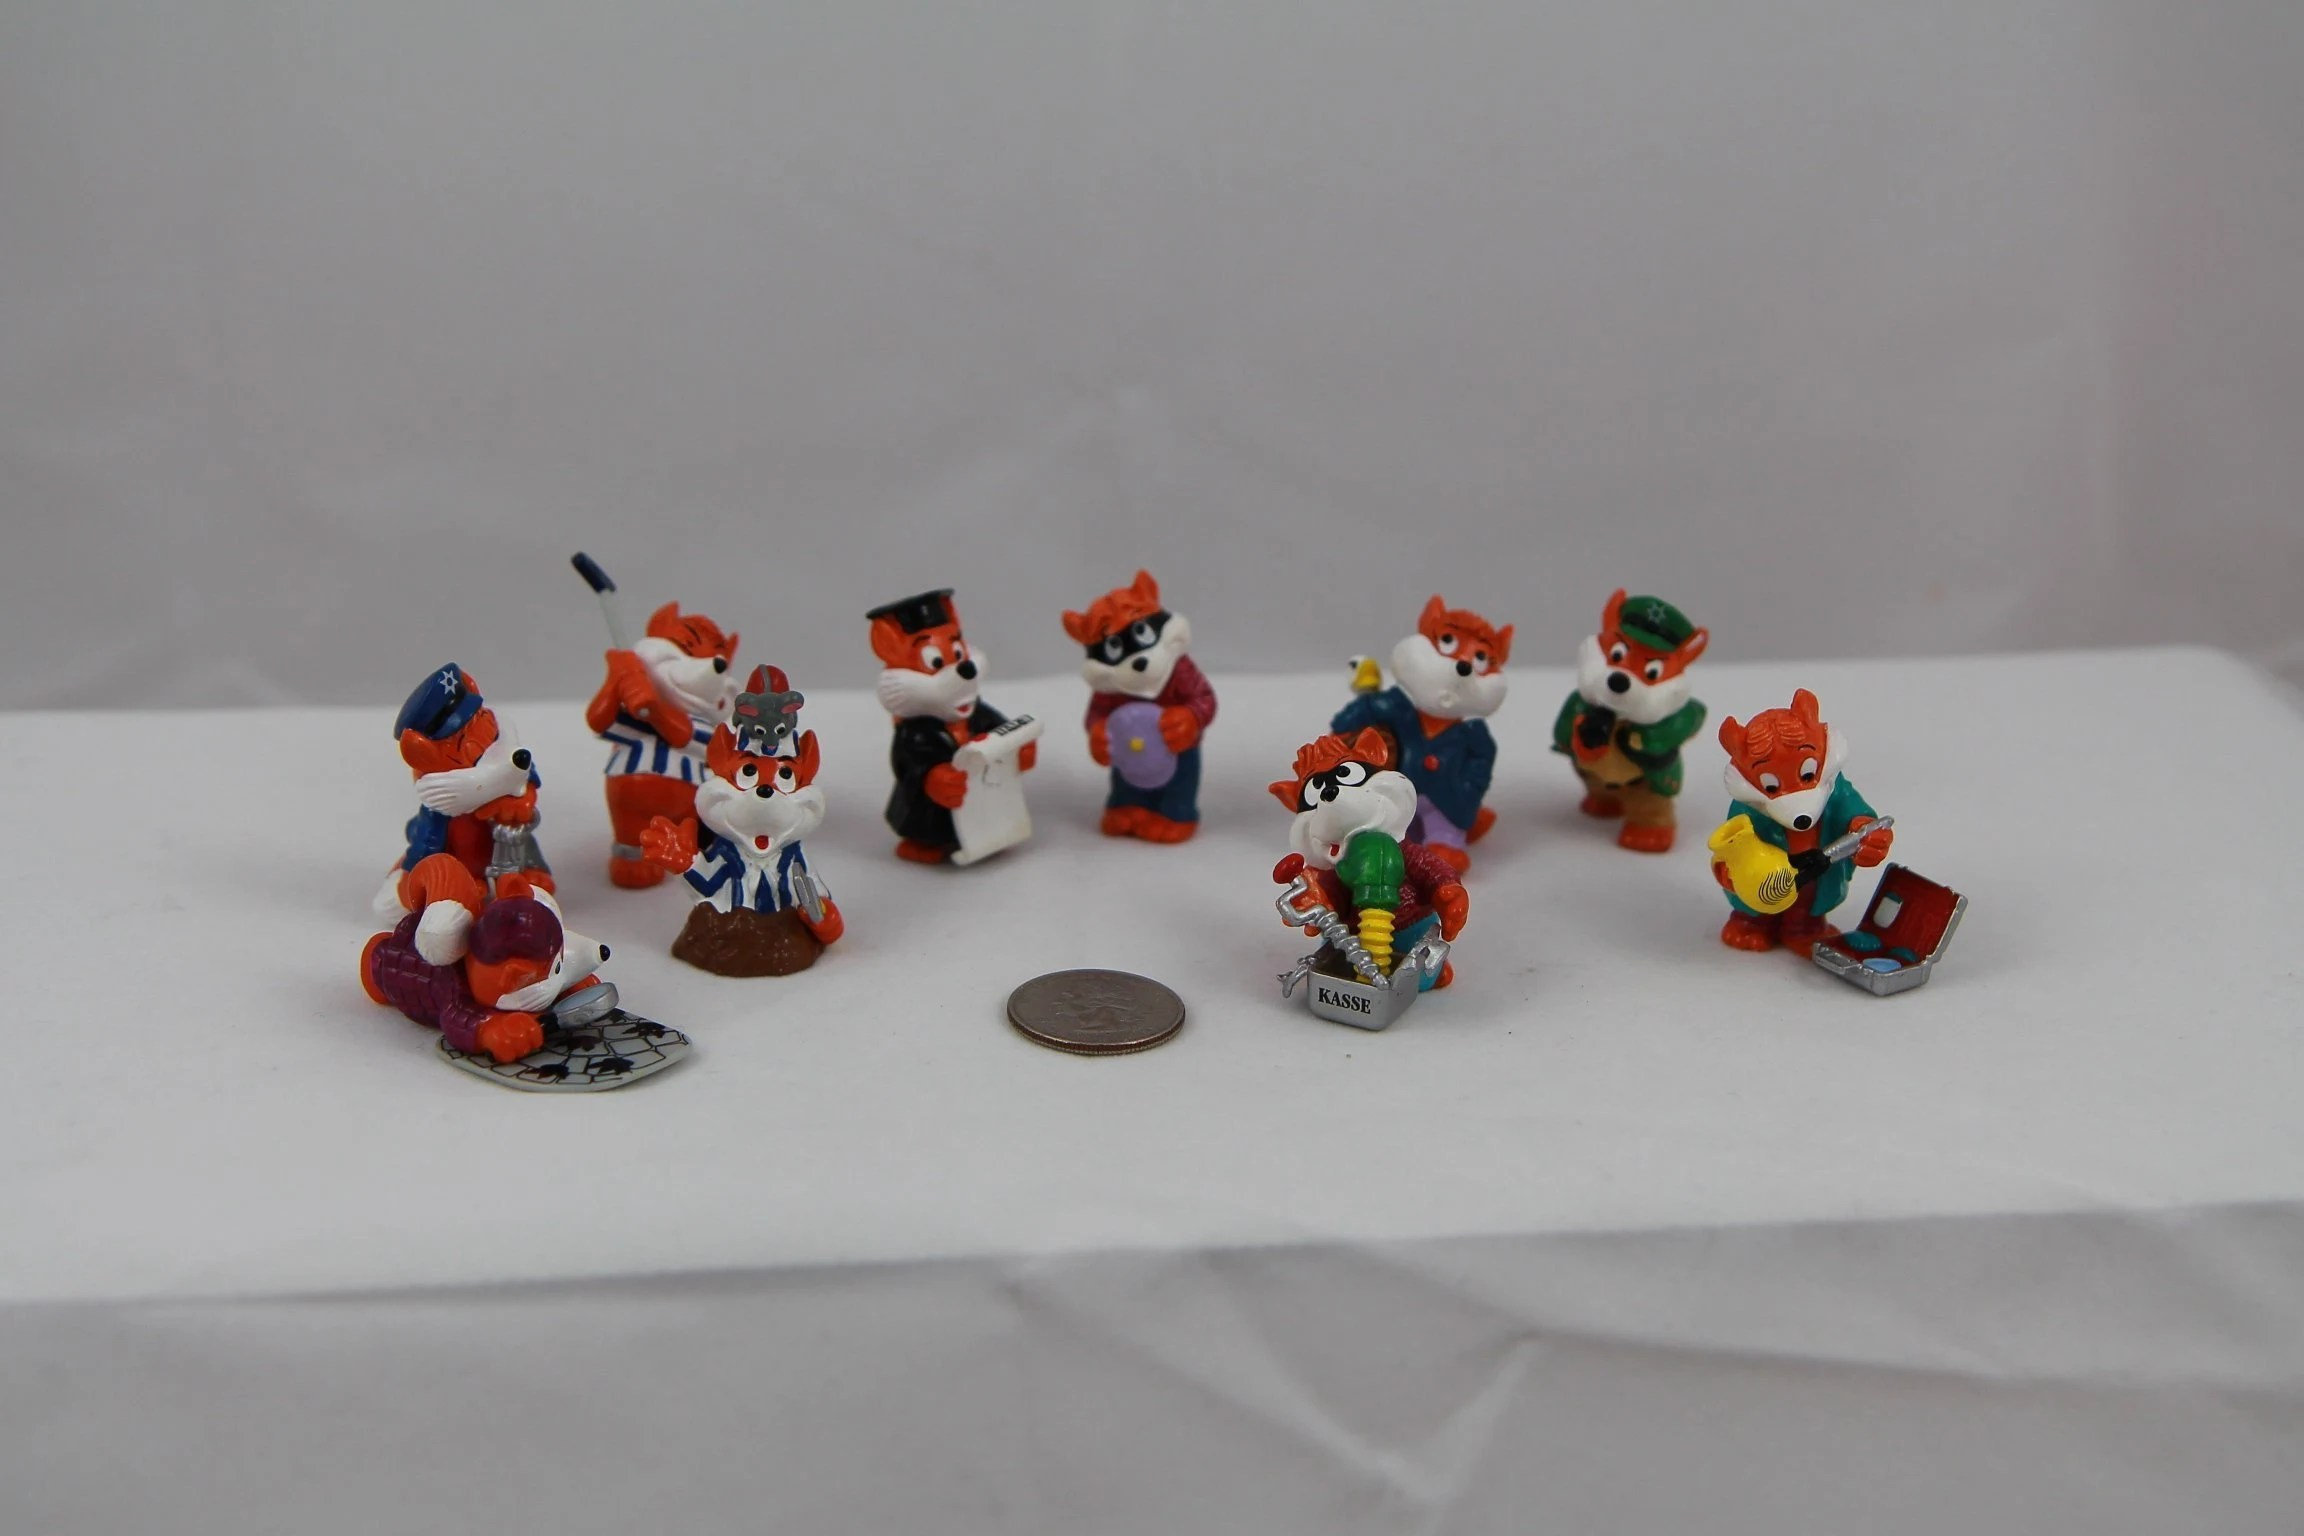 Kinder Kasse Kinder Egg Fancy Foxes Kinder Egg Fancy Fuxies Fancy Foxes Set Fancy Foxes Police And Criminals Complete Kinder Egg Fancy Foxes Set